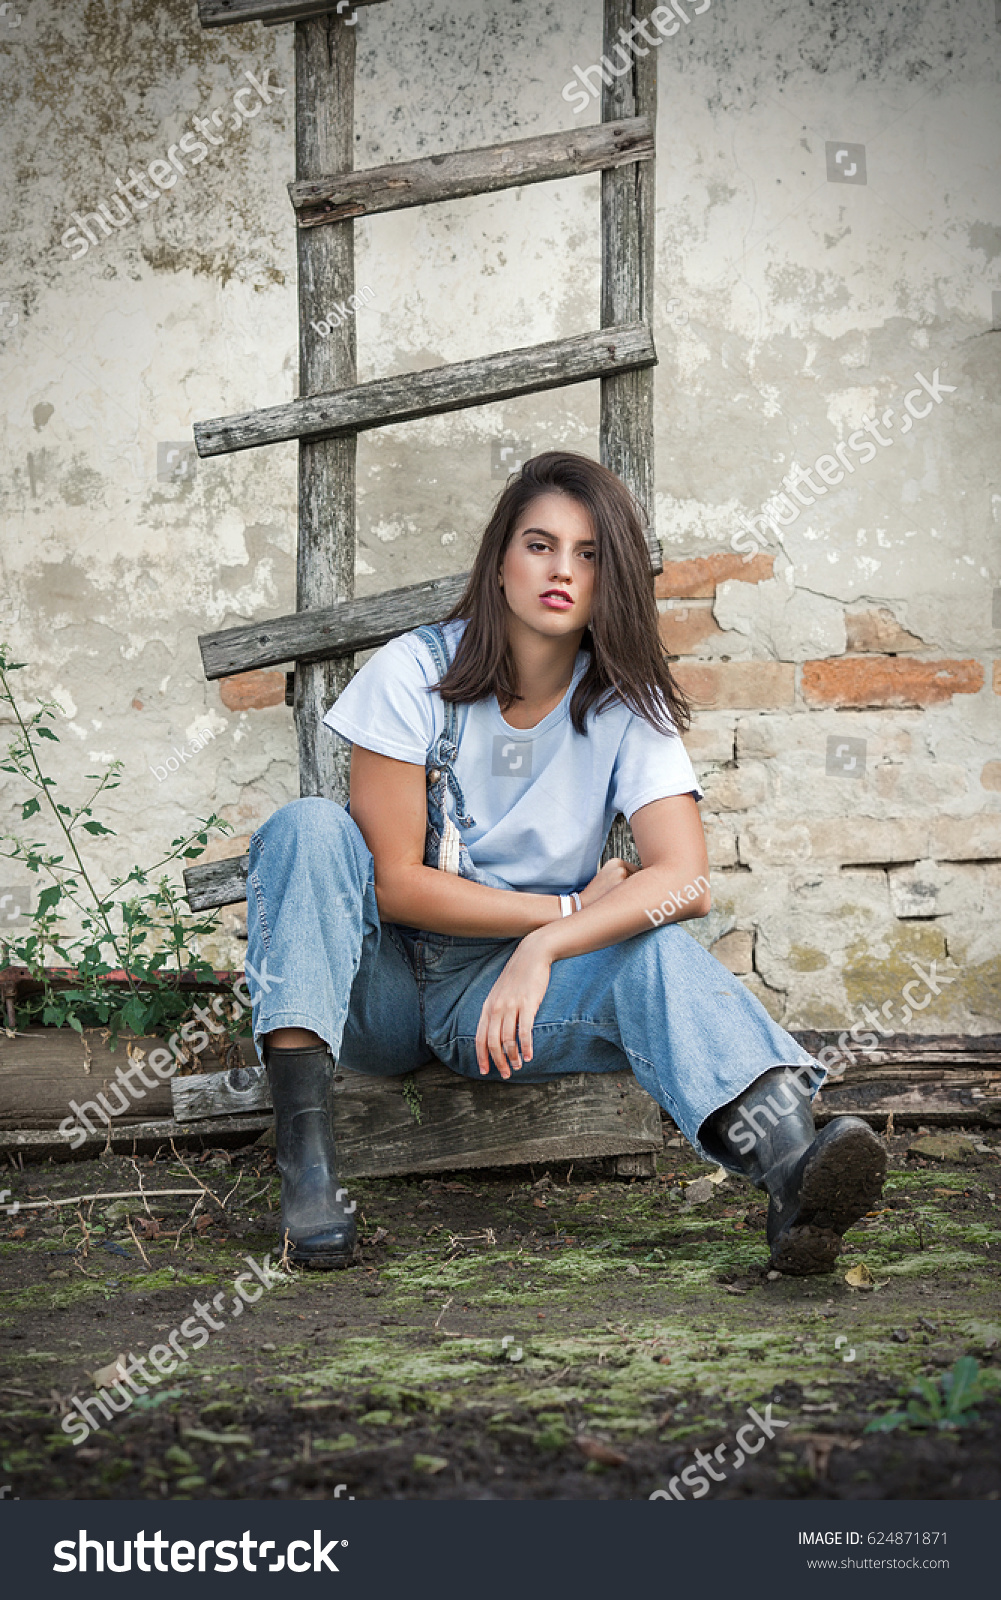 Beautiful Young Woman Is Sitting On The Ladder Leaning On The Old Rustic Wall